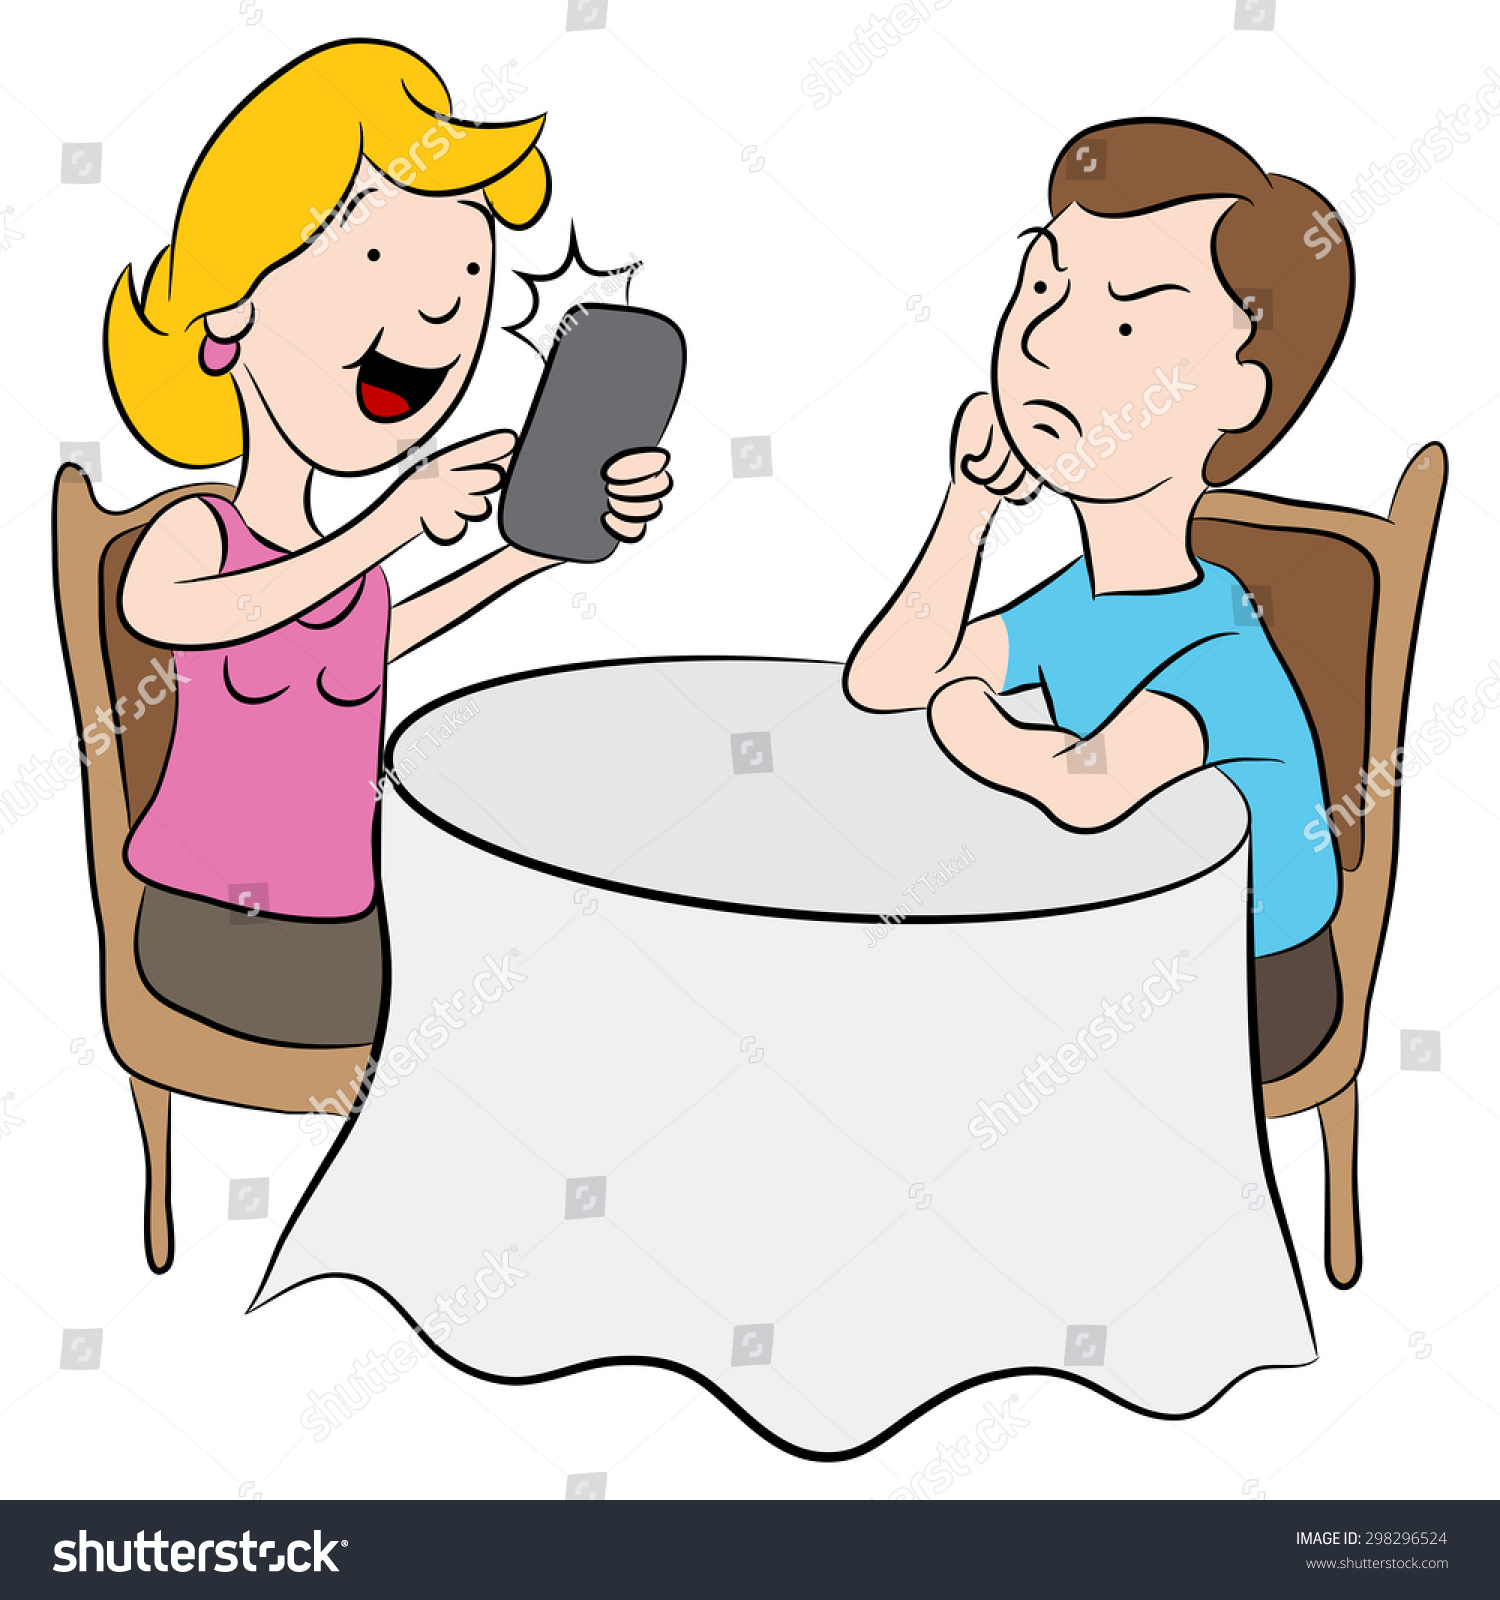 girl texting clipart - photo #47